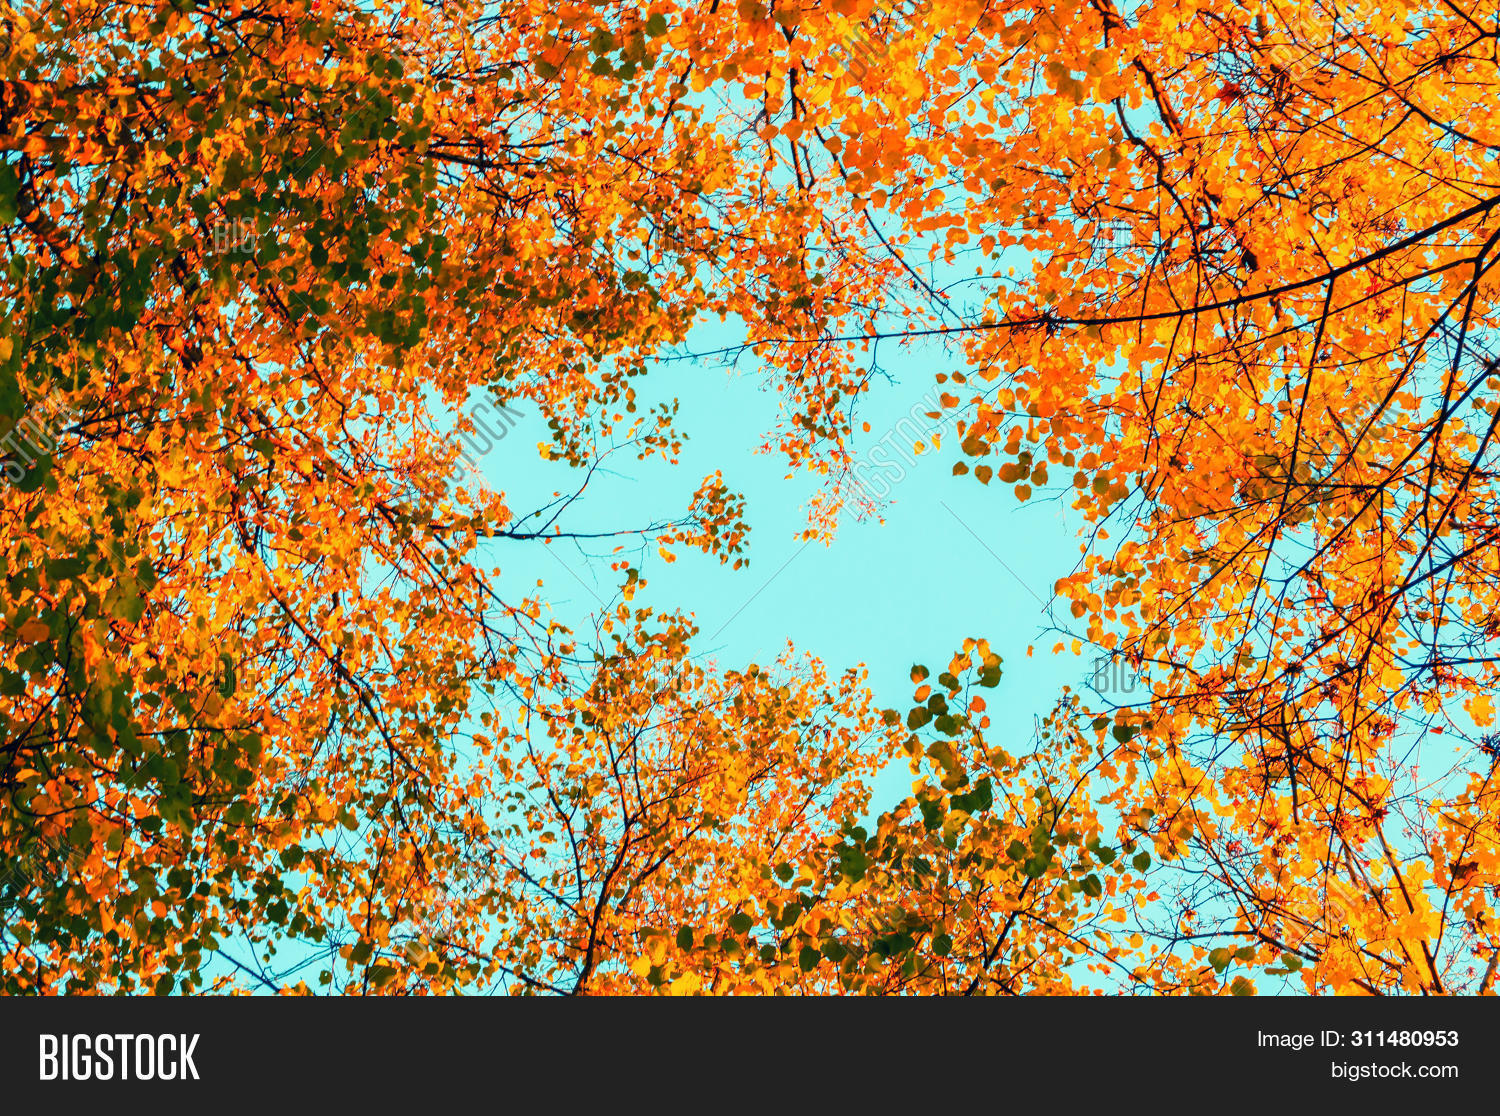 against,autumn,autumnal,background,beauty,birch,blue,botanic,botany,branch,bright,bush,fall,foliage,forest,garden,gardening,green,growth,horizontal,landscape,leaves,natural,nature,orange,park,plant,point,red,season,shooting,sky,space,tops,tree,yellow,yellowed,fall-forest,fall-landscape,fall-nature,fall-scene,fall-trees,fall-background,fall-leaves,fall-park,fall-outdoors,fall-leaf,fall-alley,fall-sunset